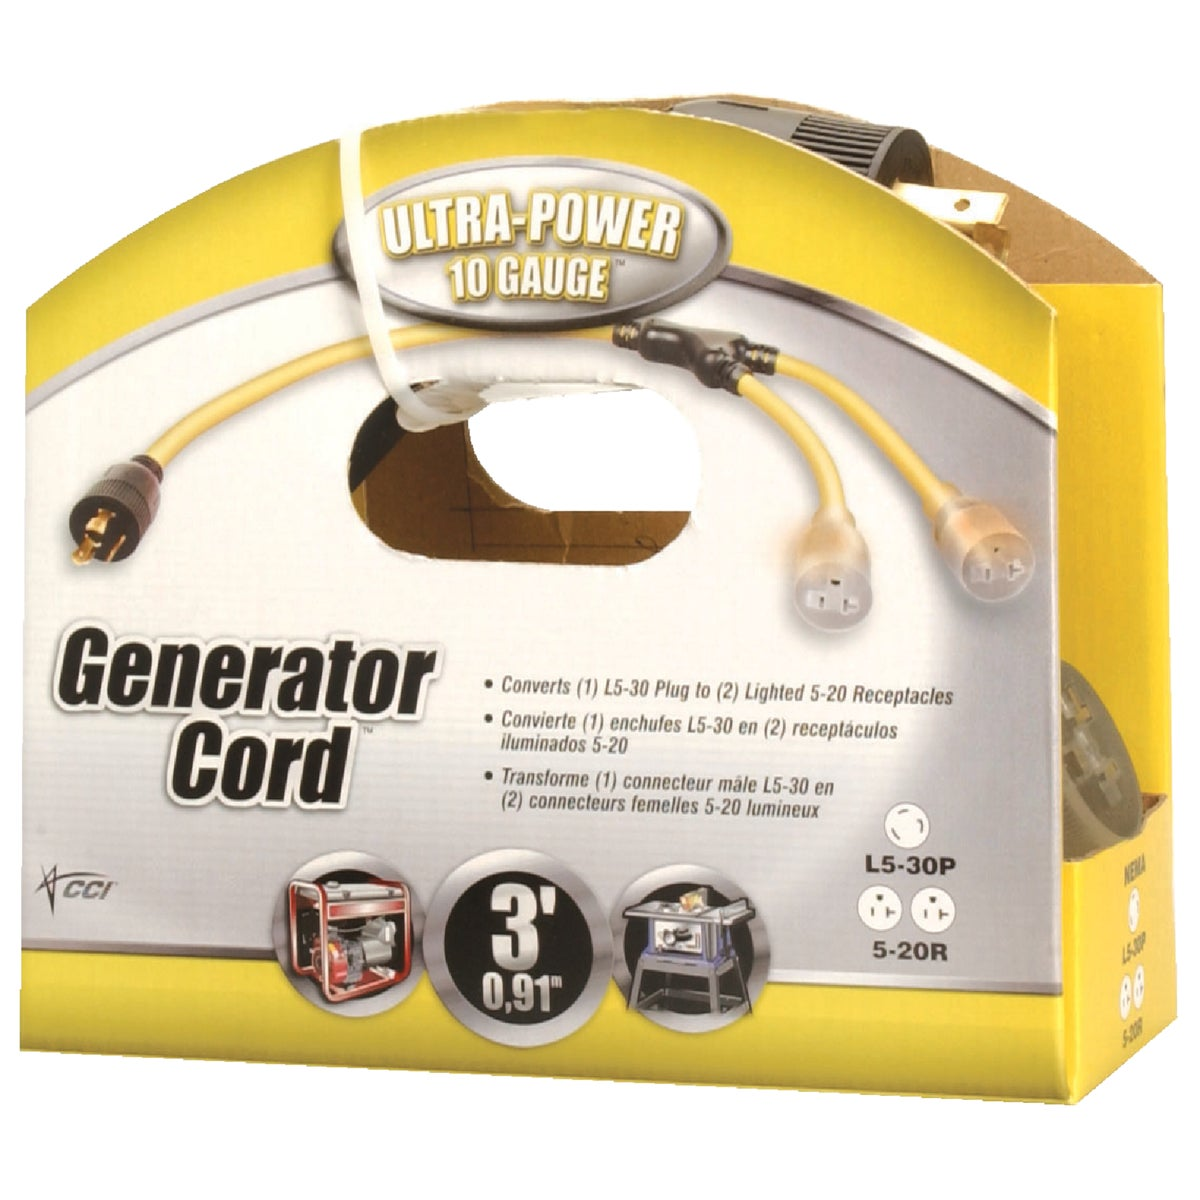 3' 10/3 GENERATOR CORD - 01915-88-02 by Woods Wire Coleman